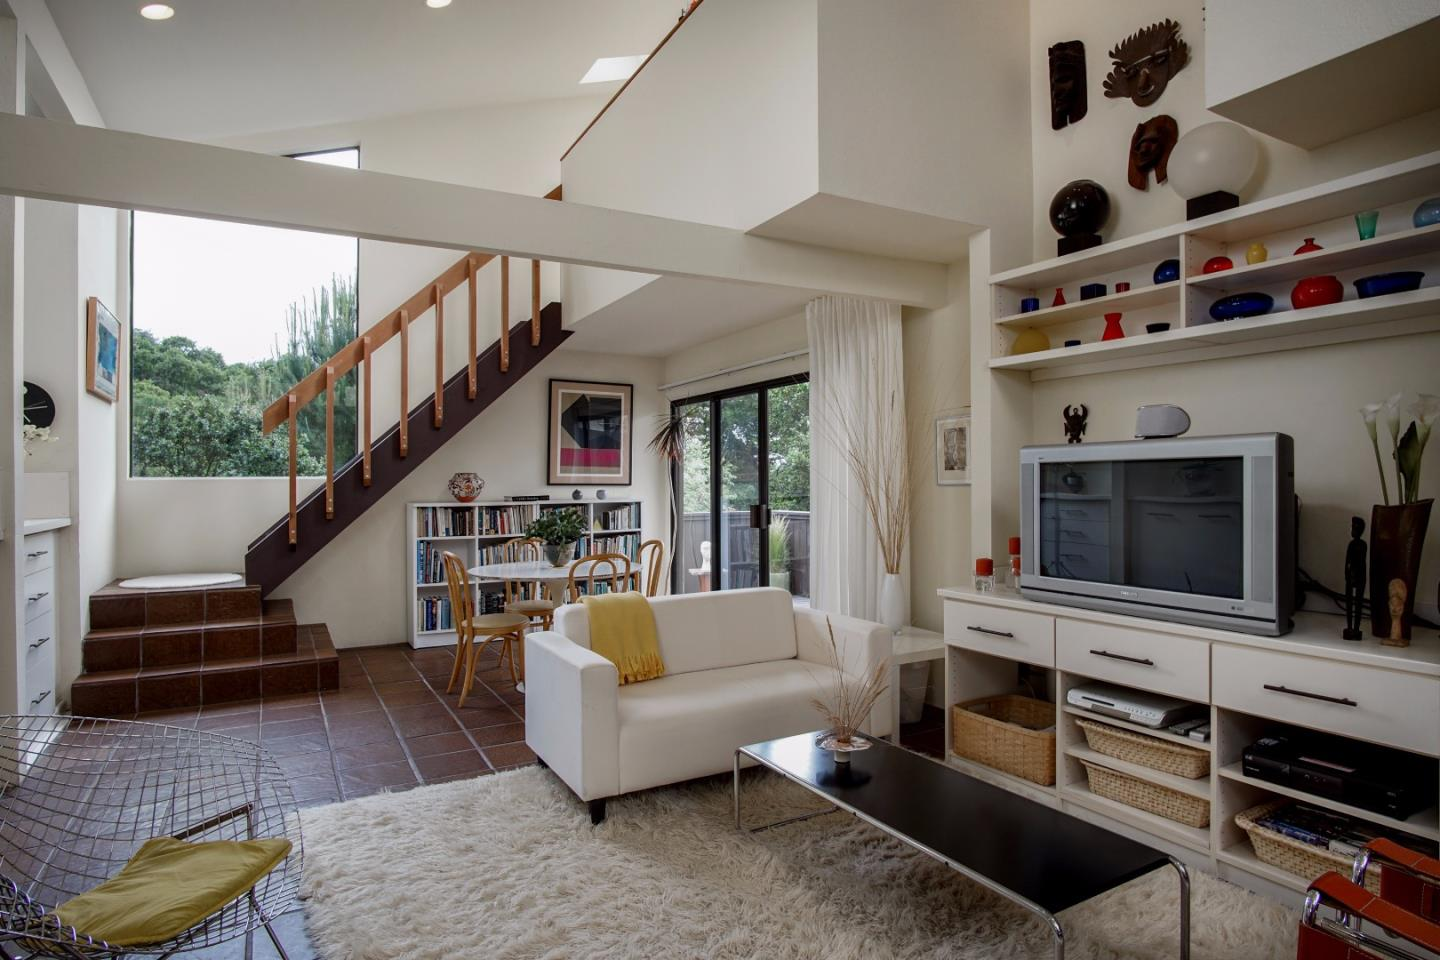 Additional photo for property listing at 15140 Charter Oak Boulevard  Prunedale, California 93907 United States